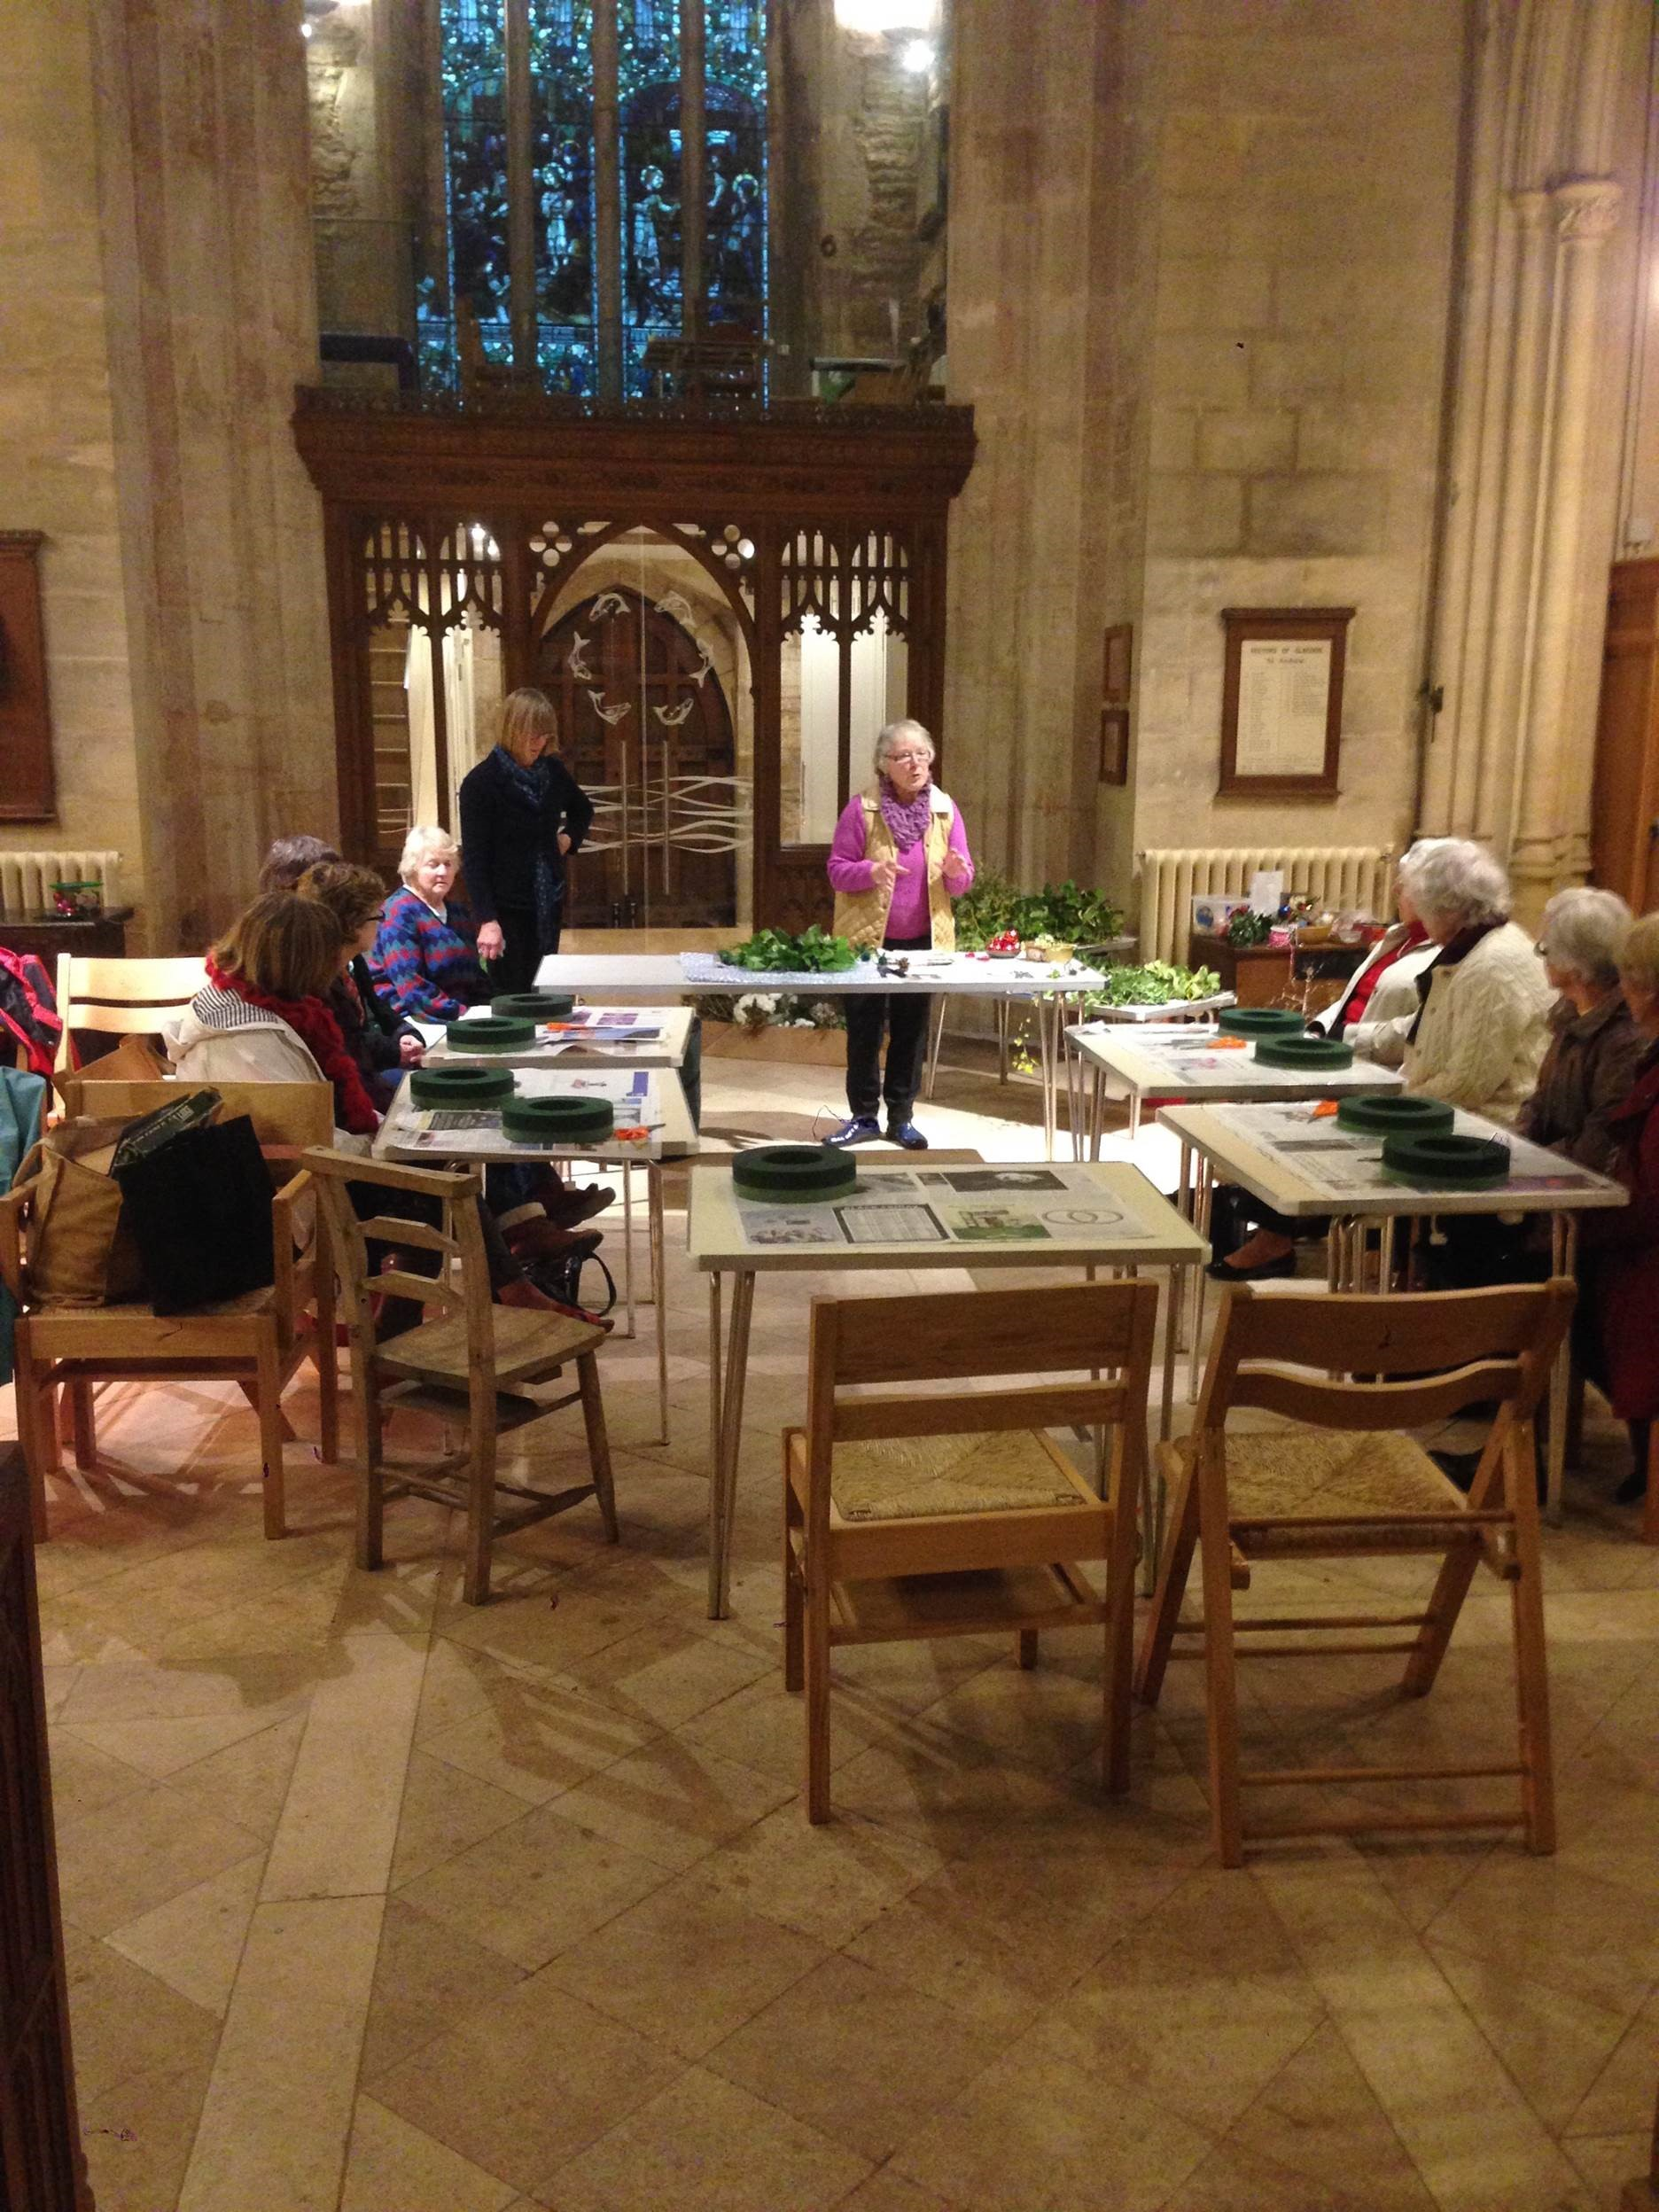 Flower arranging workshop at St Andrew's, Blagdon